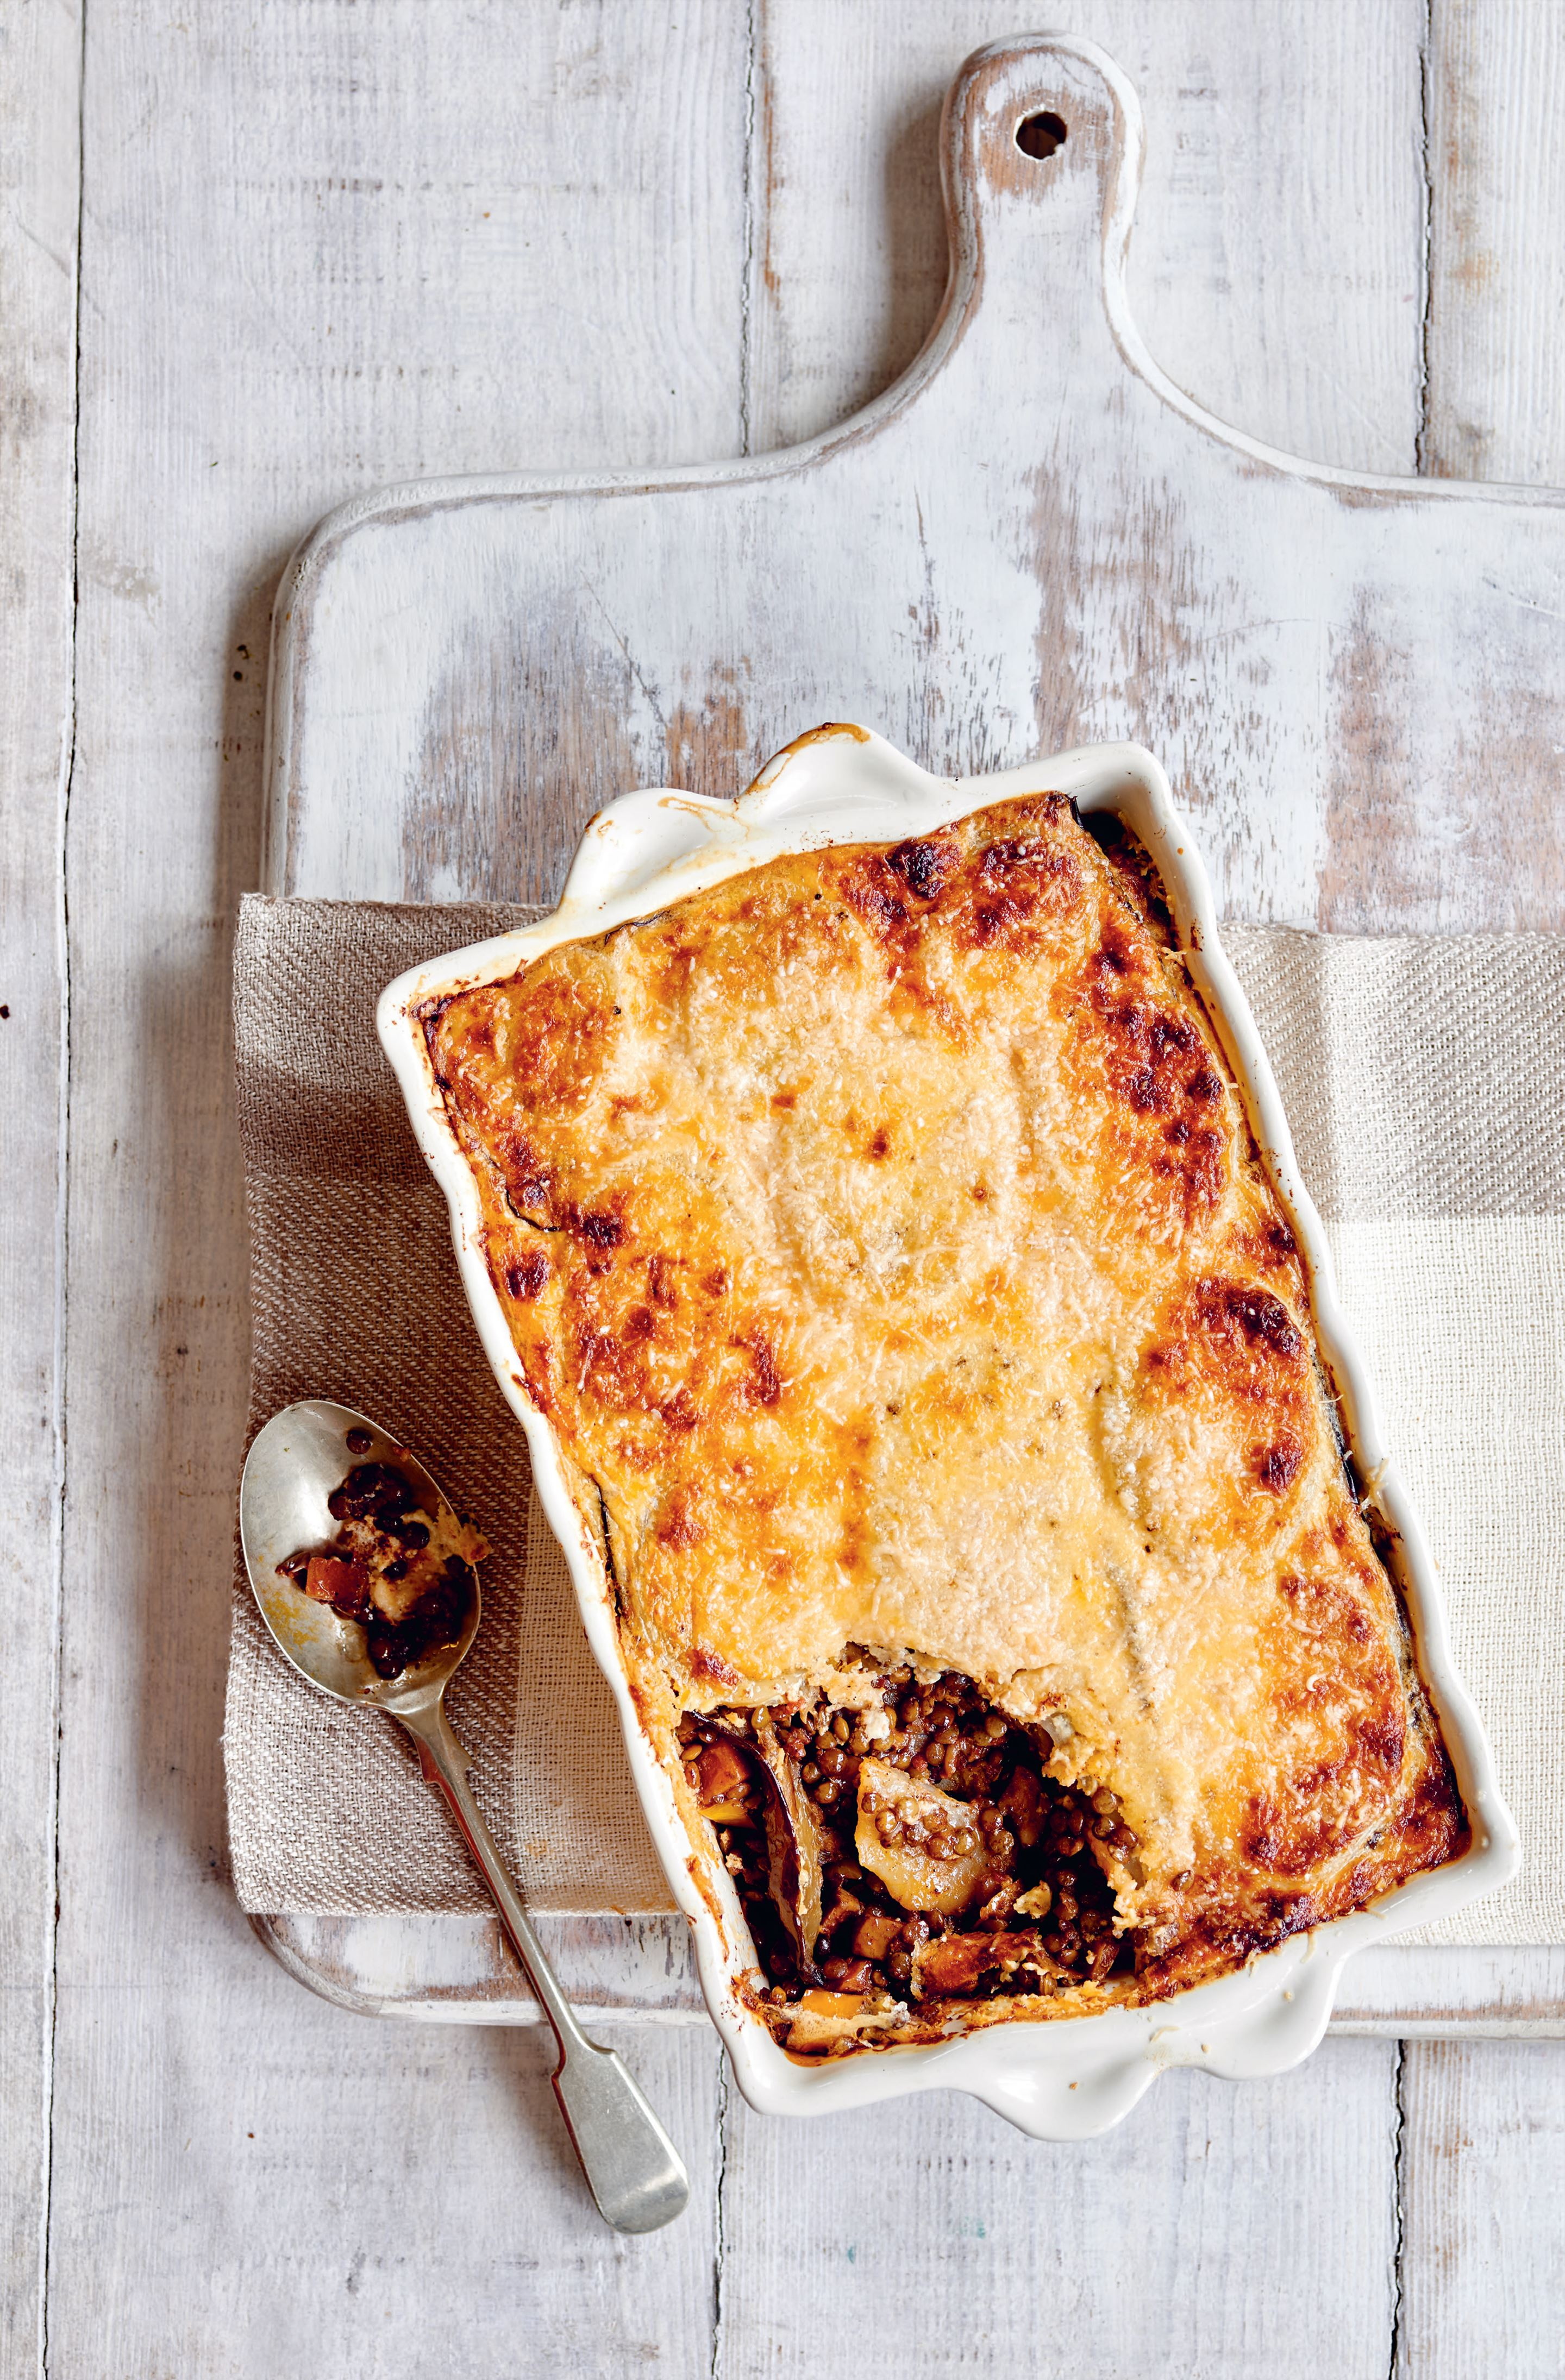 Lentil and vegetable moussaka